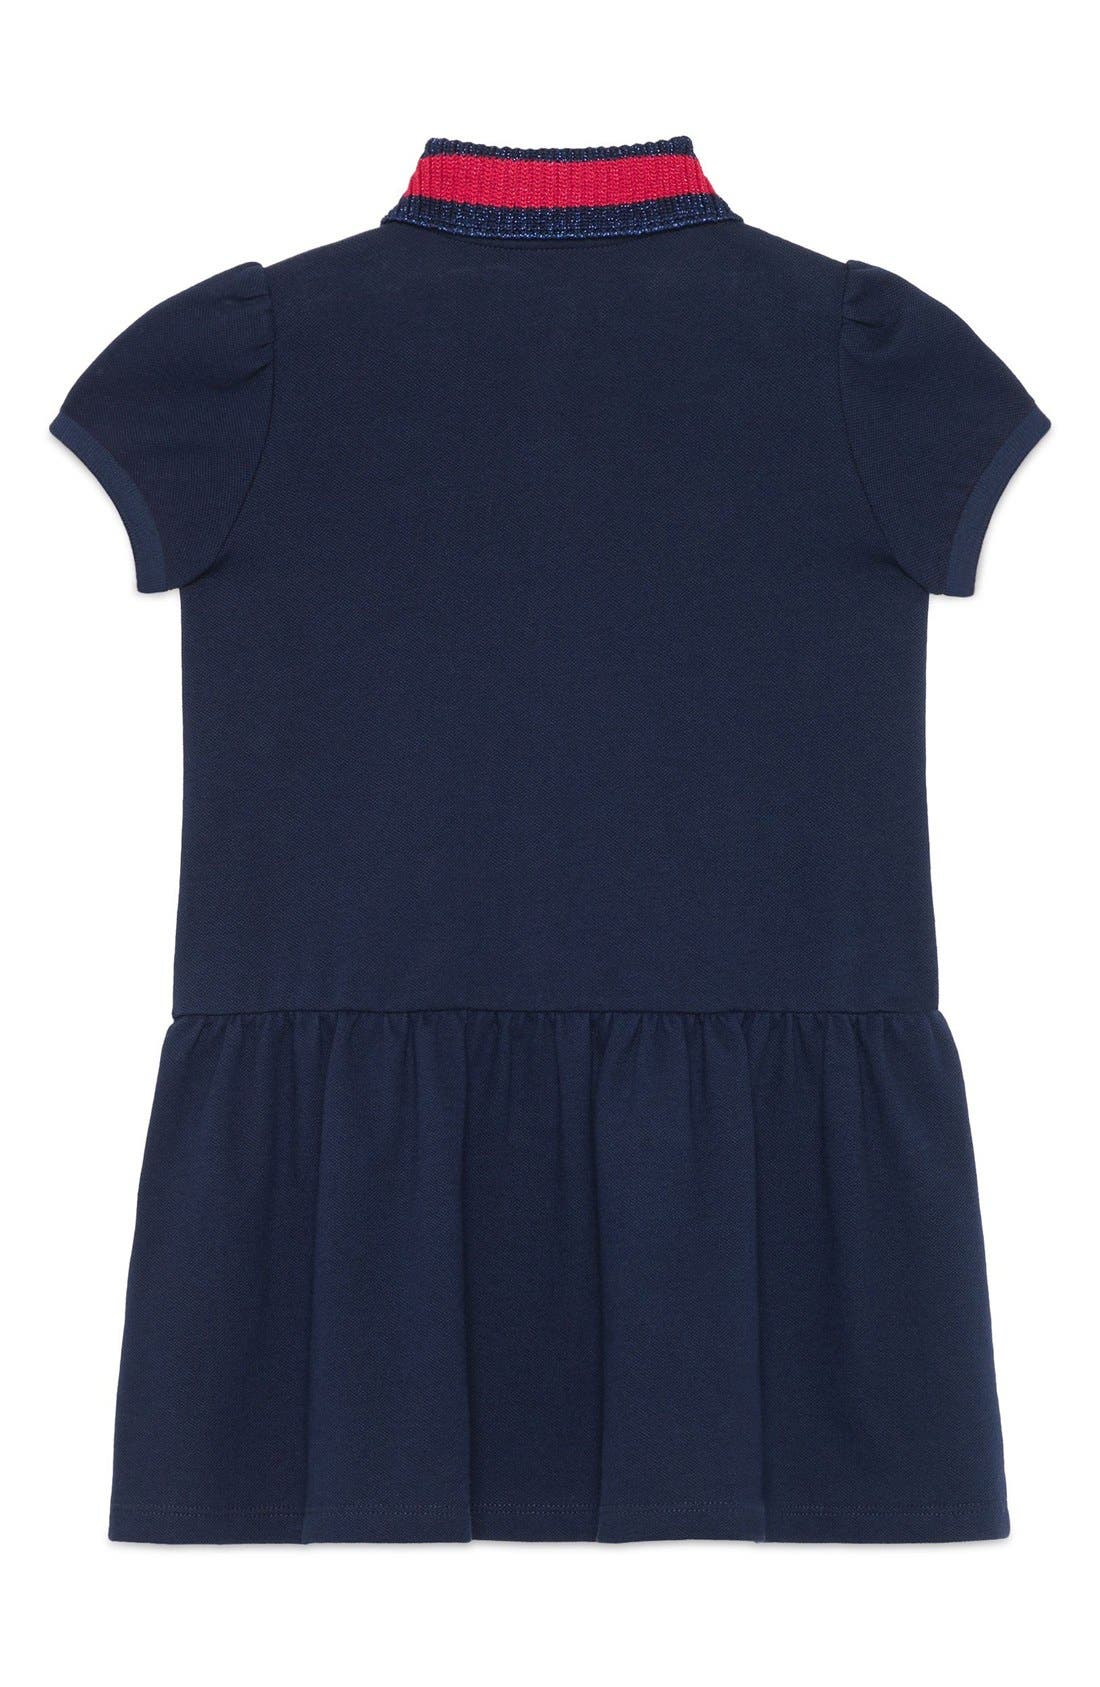 Embroidered Dress,                             Alternate thumbnail 2, color,                             493